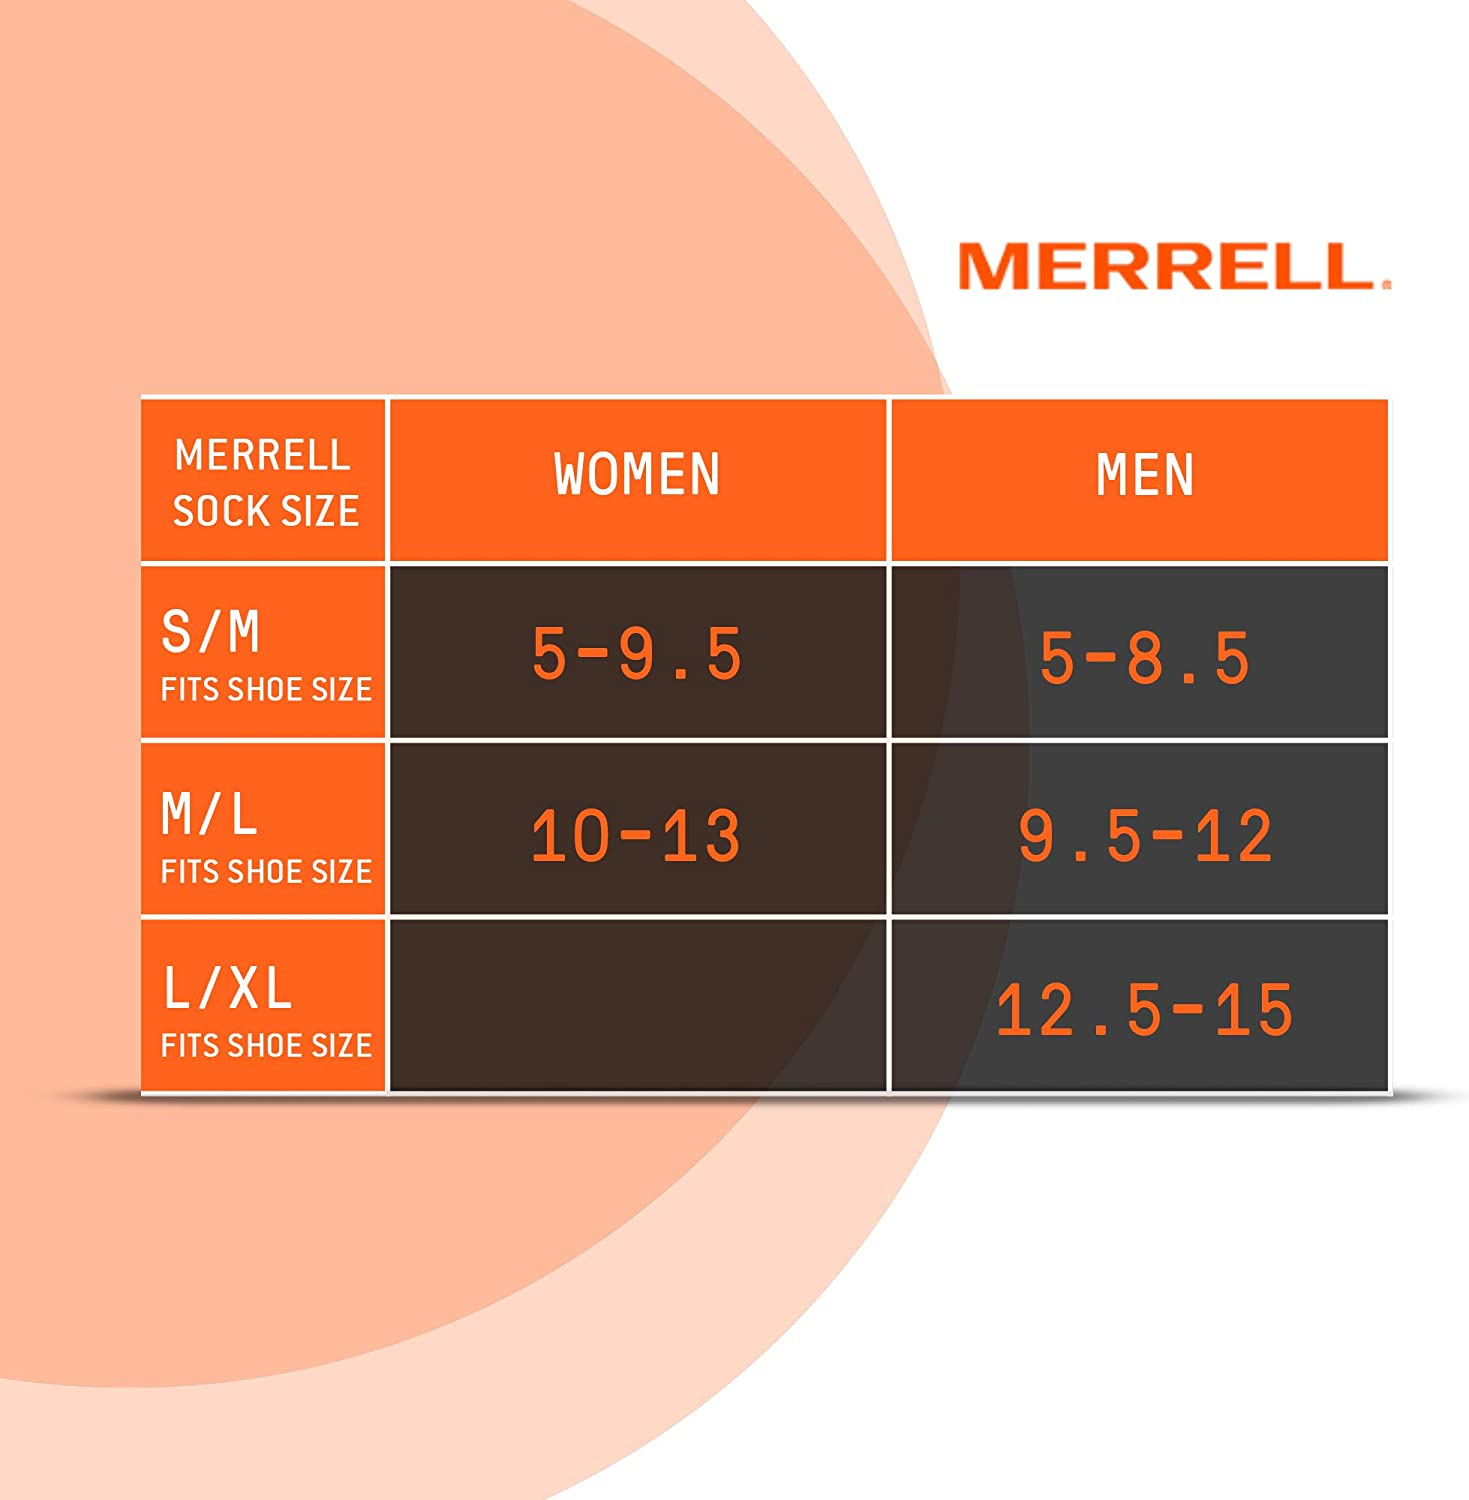 merrell mens size chart graphic